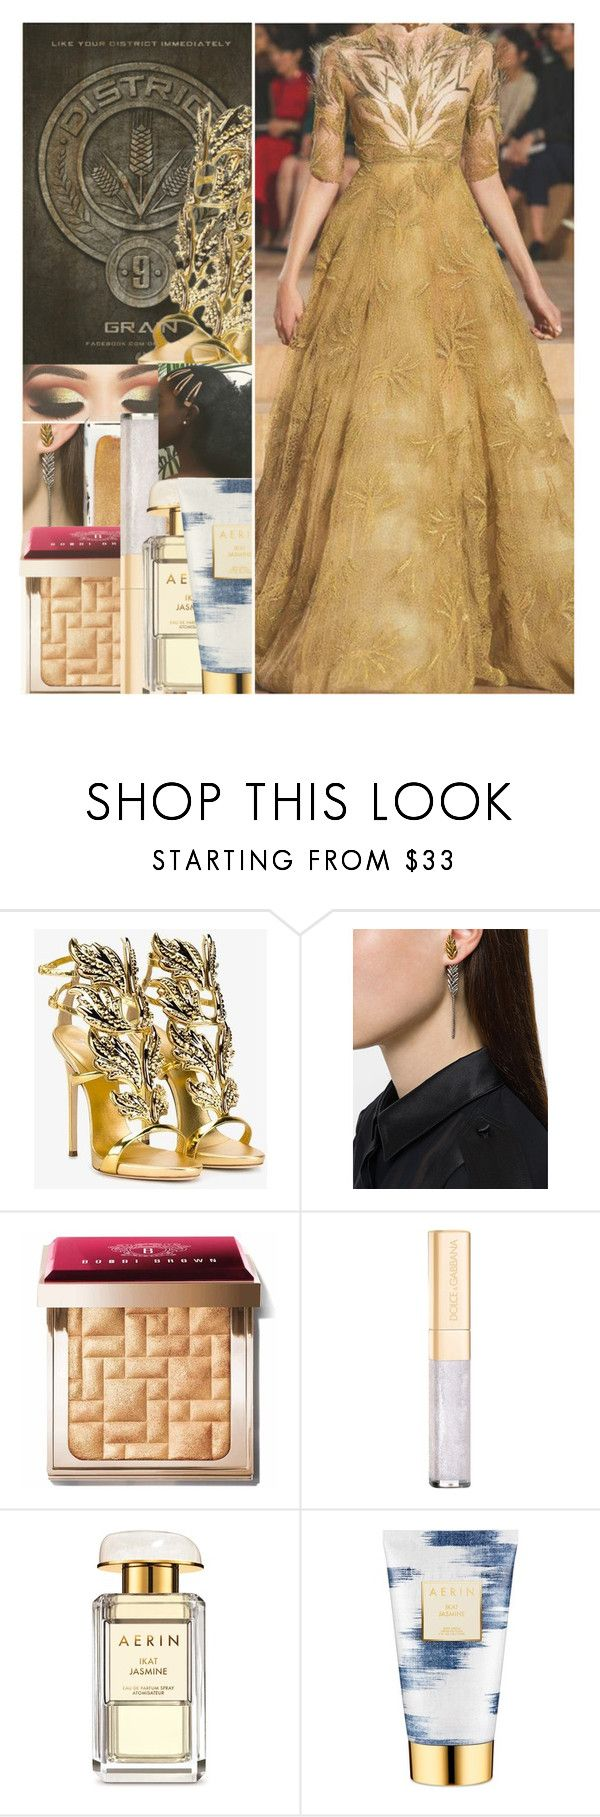 """""""HUNGER GAMES : DISTRICT 9"""" by w-on-der-lan-d ❤ liked on Polyvore featuring Giuseppe Zanotti, Yves Saint Laurent, Estée Lauder, Bobbi Brown Cosmetics, Dolce&Gabbana, AERIN, Hungergames and District9"""